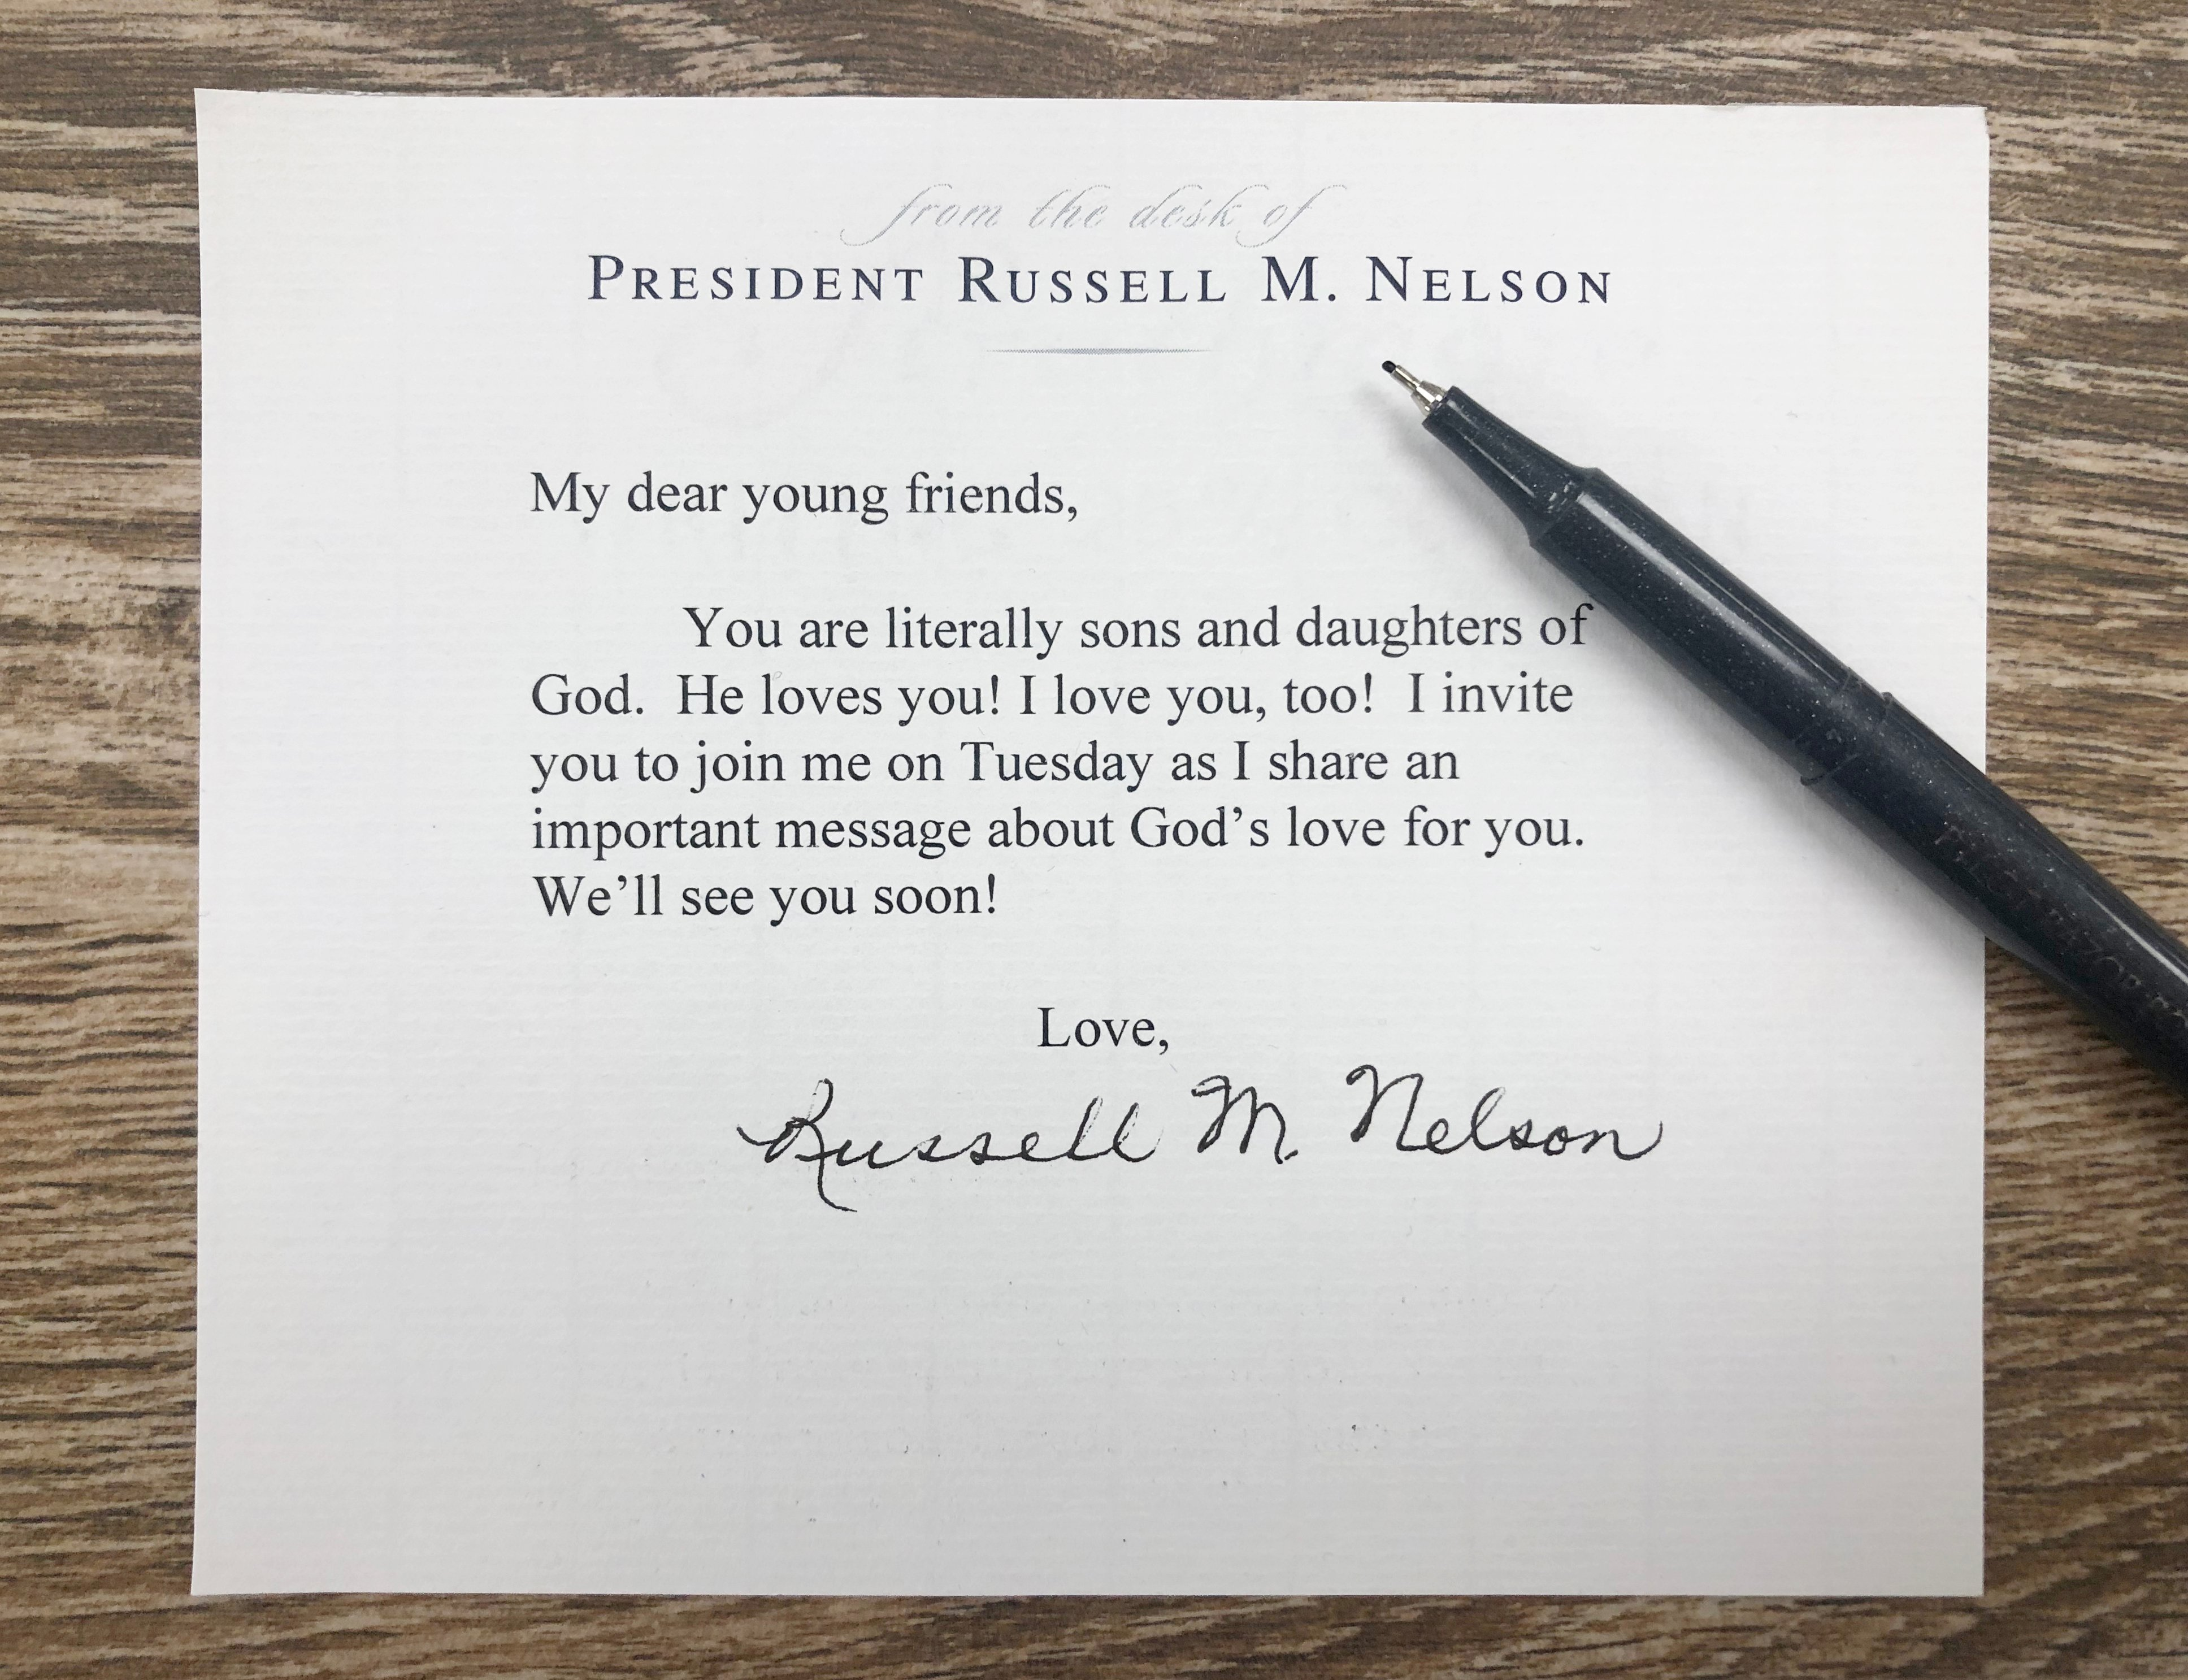 President Russell M. Nelson invites young adults to listen to his message about God's love for them at a BYU devotional on Tuesday, Sept. 17, 2019